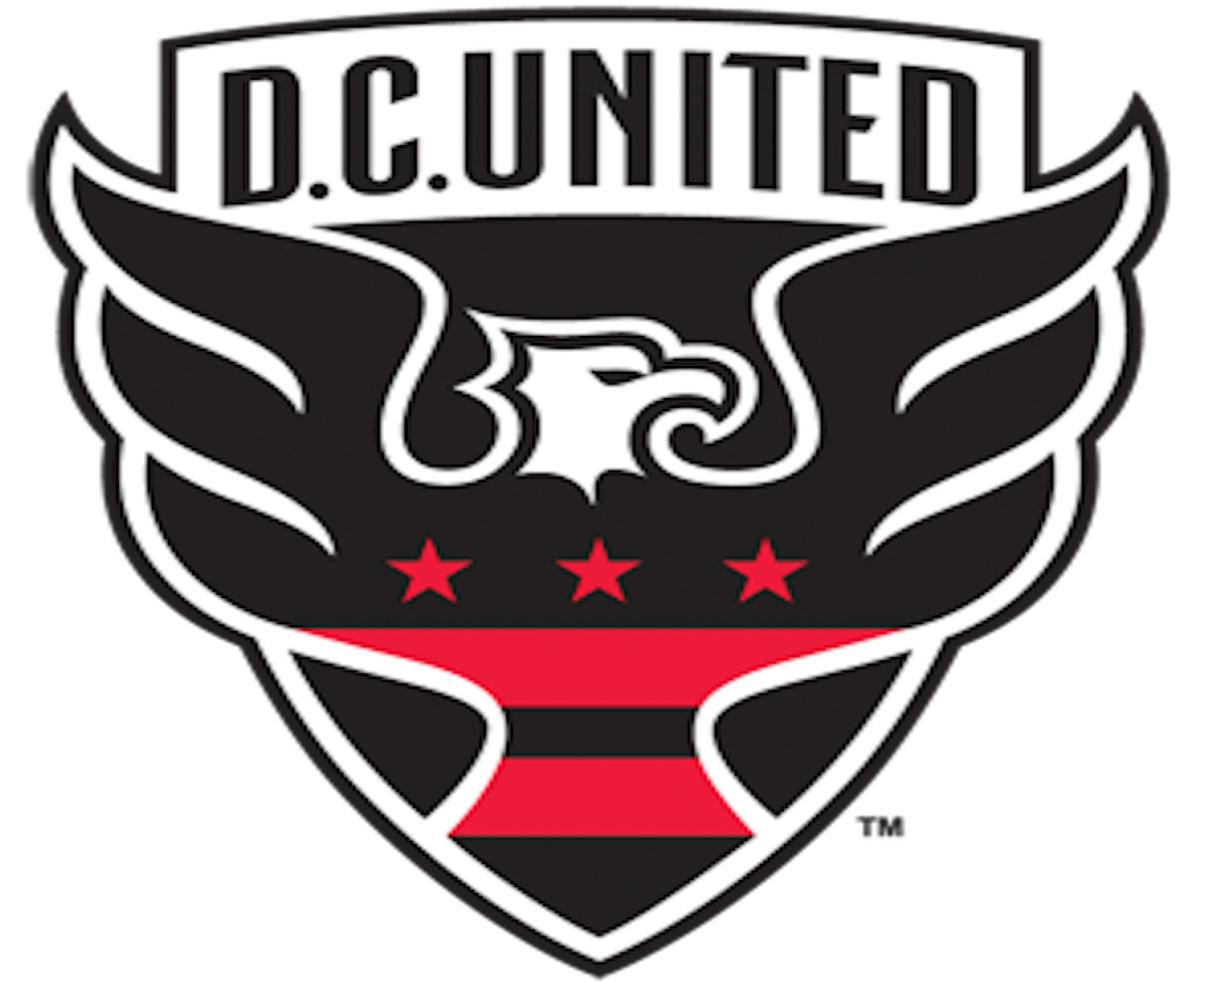 $248+ for D.C. United Soccer Camp for Ages 5-16 at RFK Stadium, Leesburg & Hagerstown - Includes Ball, T-shirt & Ticket Voucher for D.C. United Match! (Up to $70 Off)